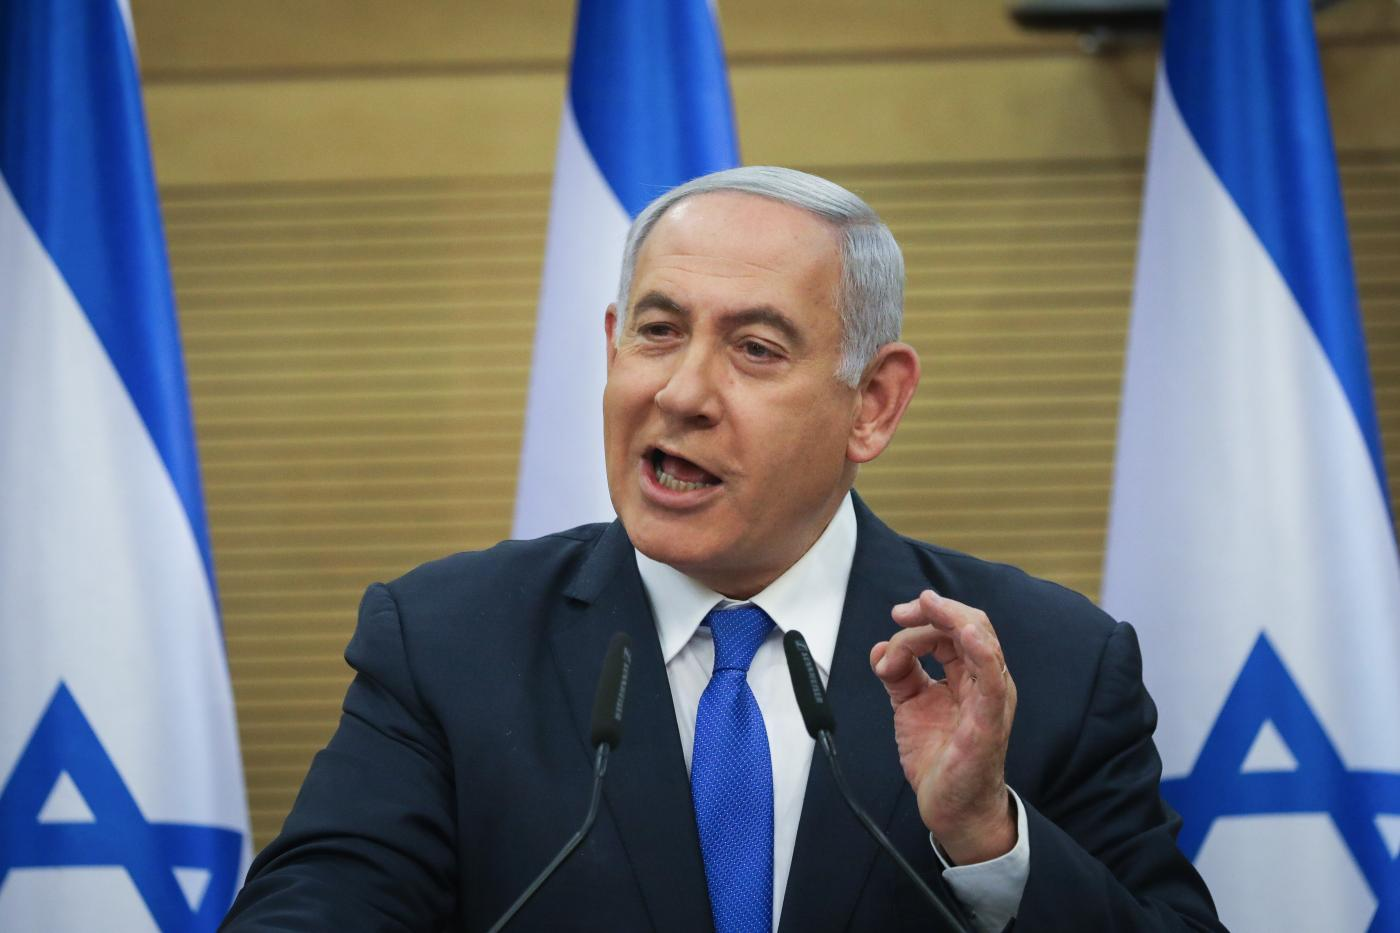 JERUSALEM, May 27, 2019 (Xinhua) -- Israeli Prime Minister Benjamin Netanyahu delivers a statement in Israeli parliament in Jerusalem, on May 27, 2019. Israeli Prime Minister Benjamin Netanyahu announced on Monday that he is making tremendous efforts to form a new government in the last 48 hours before the deadline. However, he admitted that he had not yet persuaded Avigdor Lieberman, head of Yisrael Beiteinu party, to join the coalition. (Xinhua/JINI/IANS) by JINI.